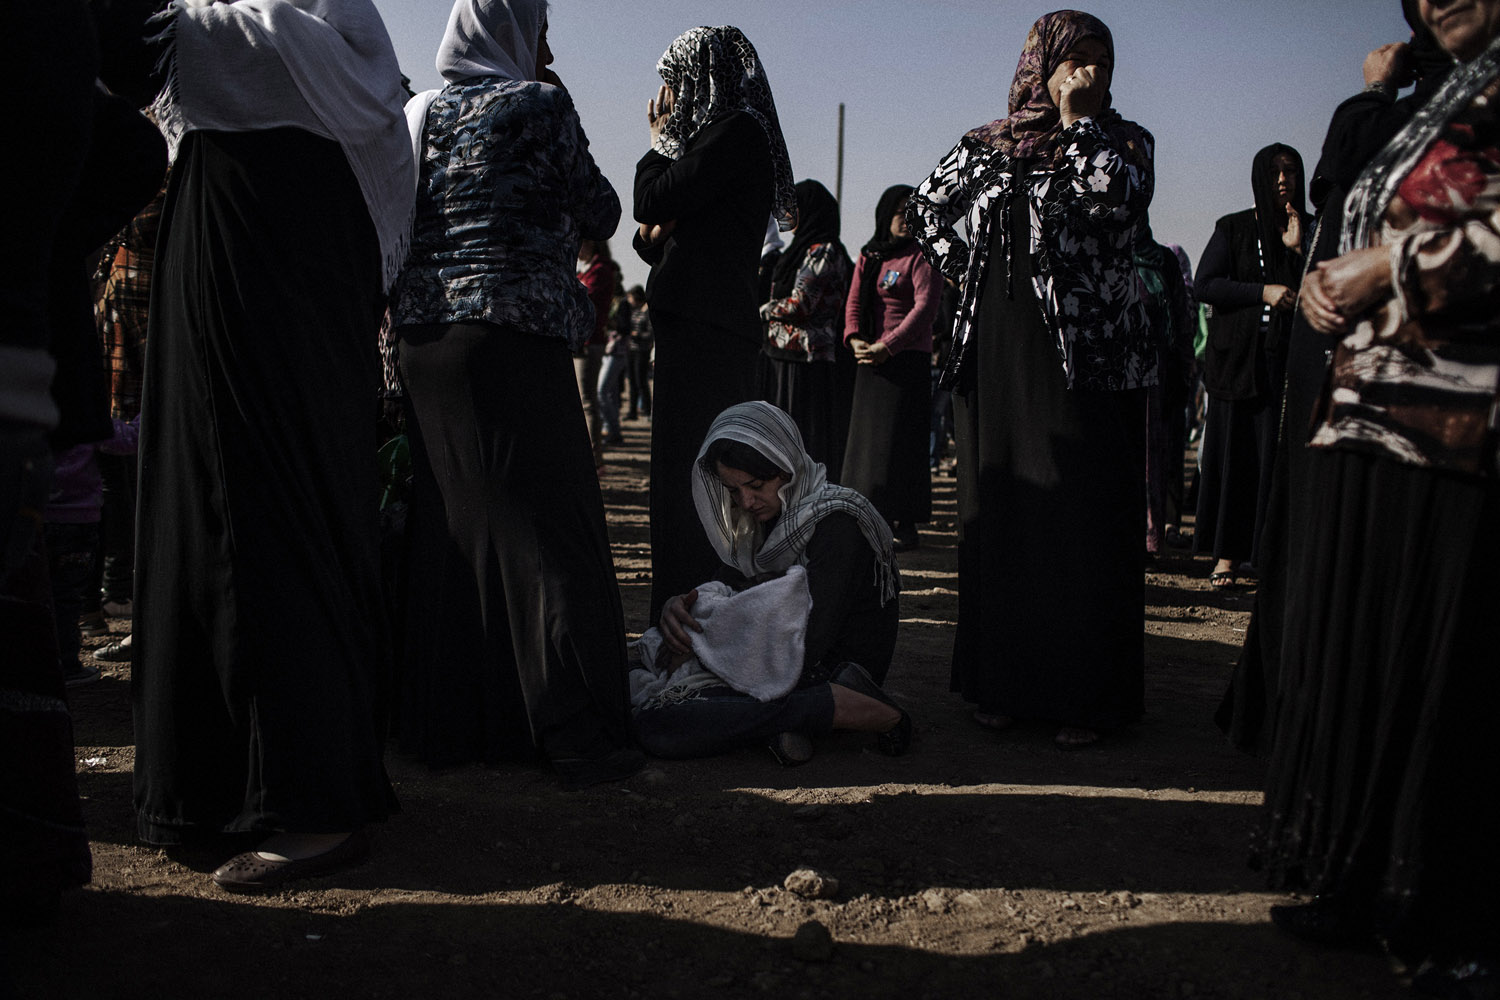 A Kurdish woman with her baby during the celebration to remember their relatives killed in the fights at the martyrs' cemetery near al-Malikiyah (Derik) on the first day of the holiday Eid.